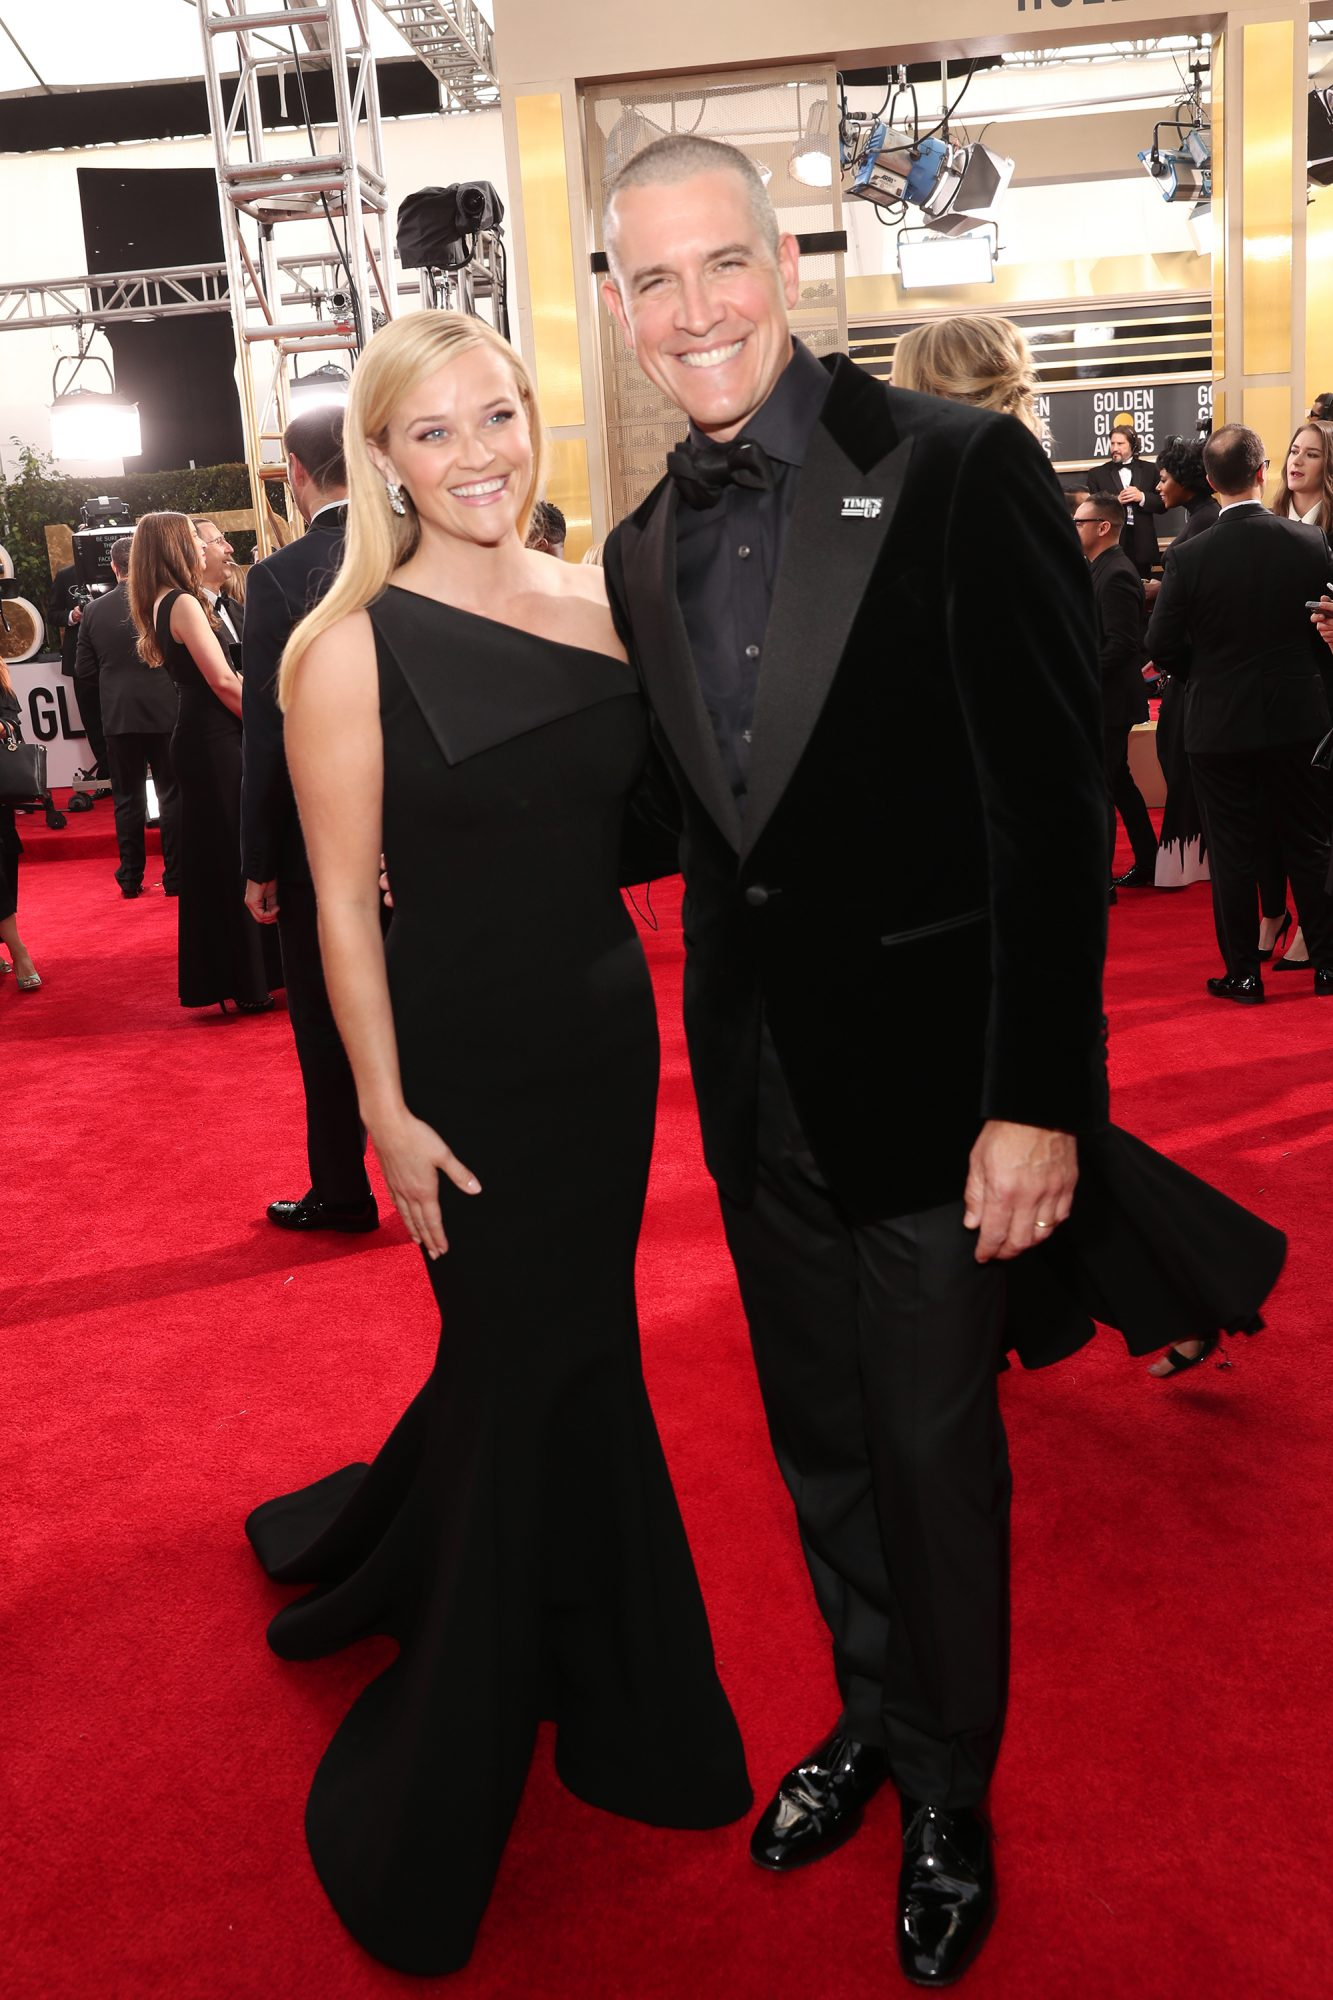 Reese Witherspoon and Jim Toth Golden Globes 2018